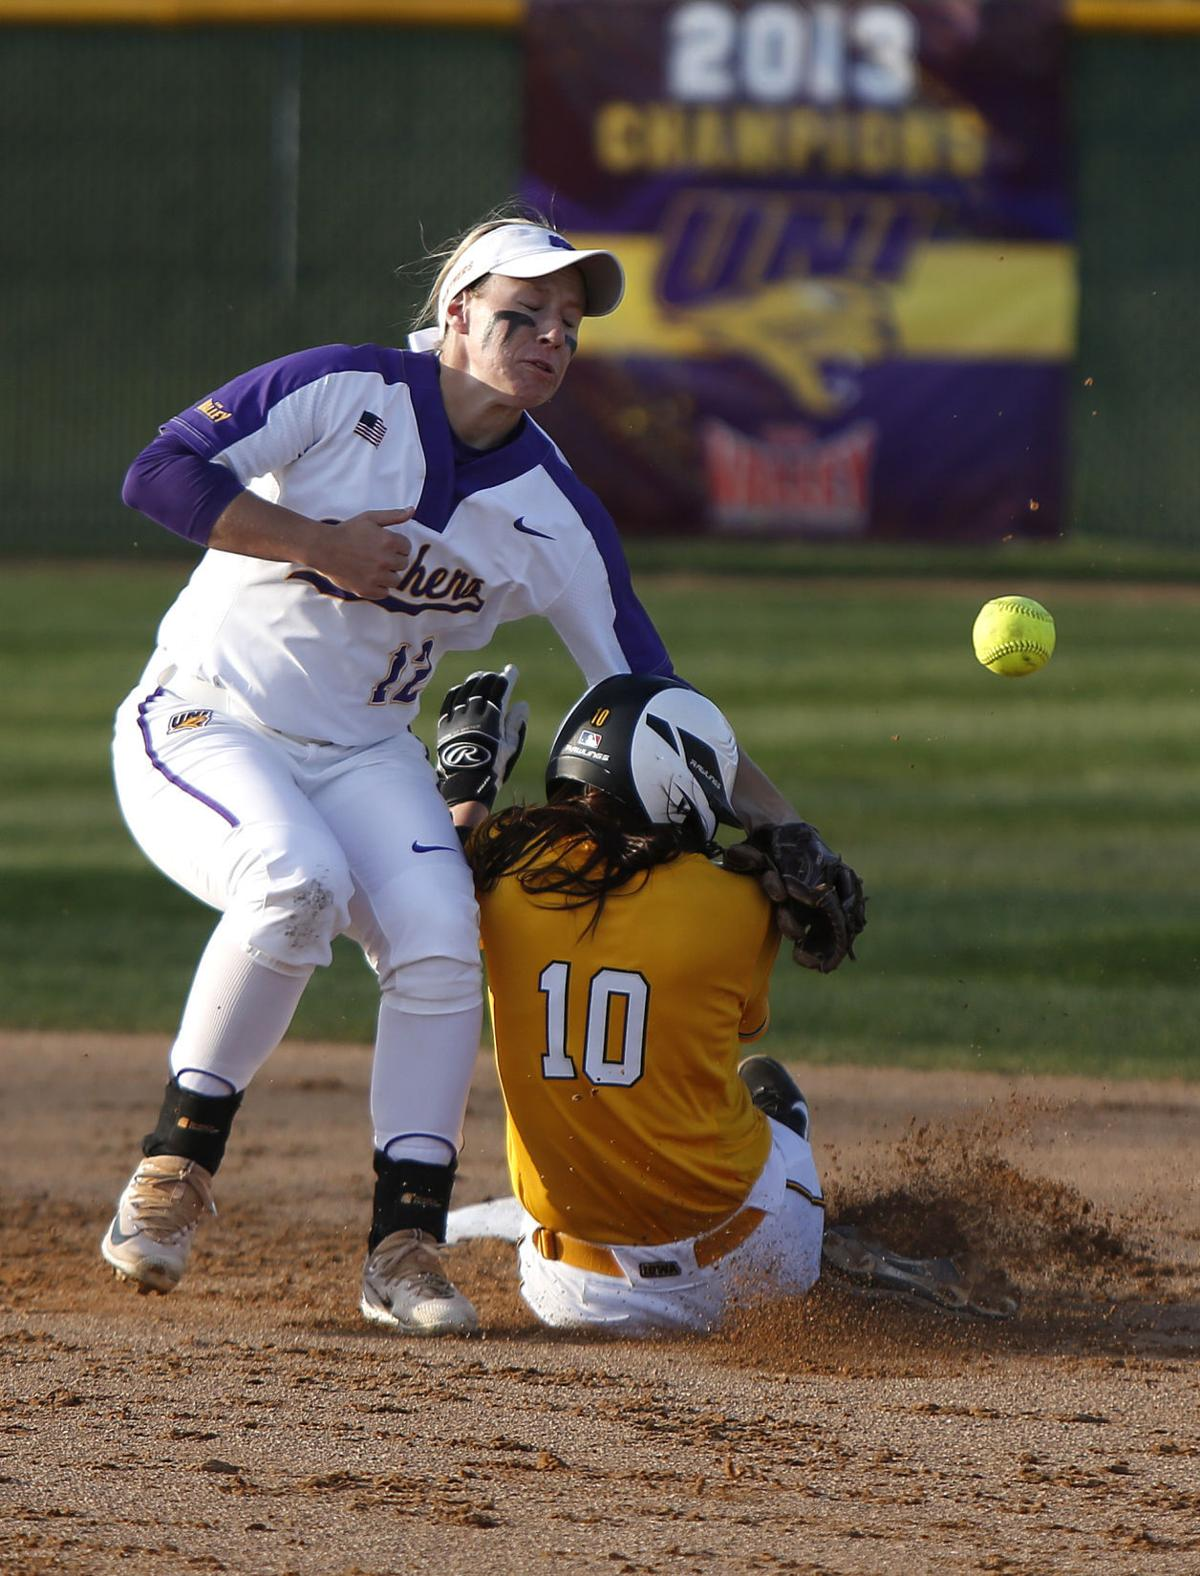 041117mp-uni-iowa-softball-1